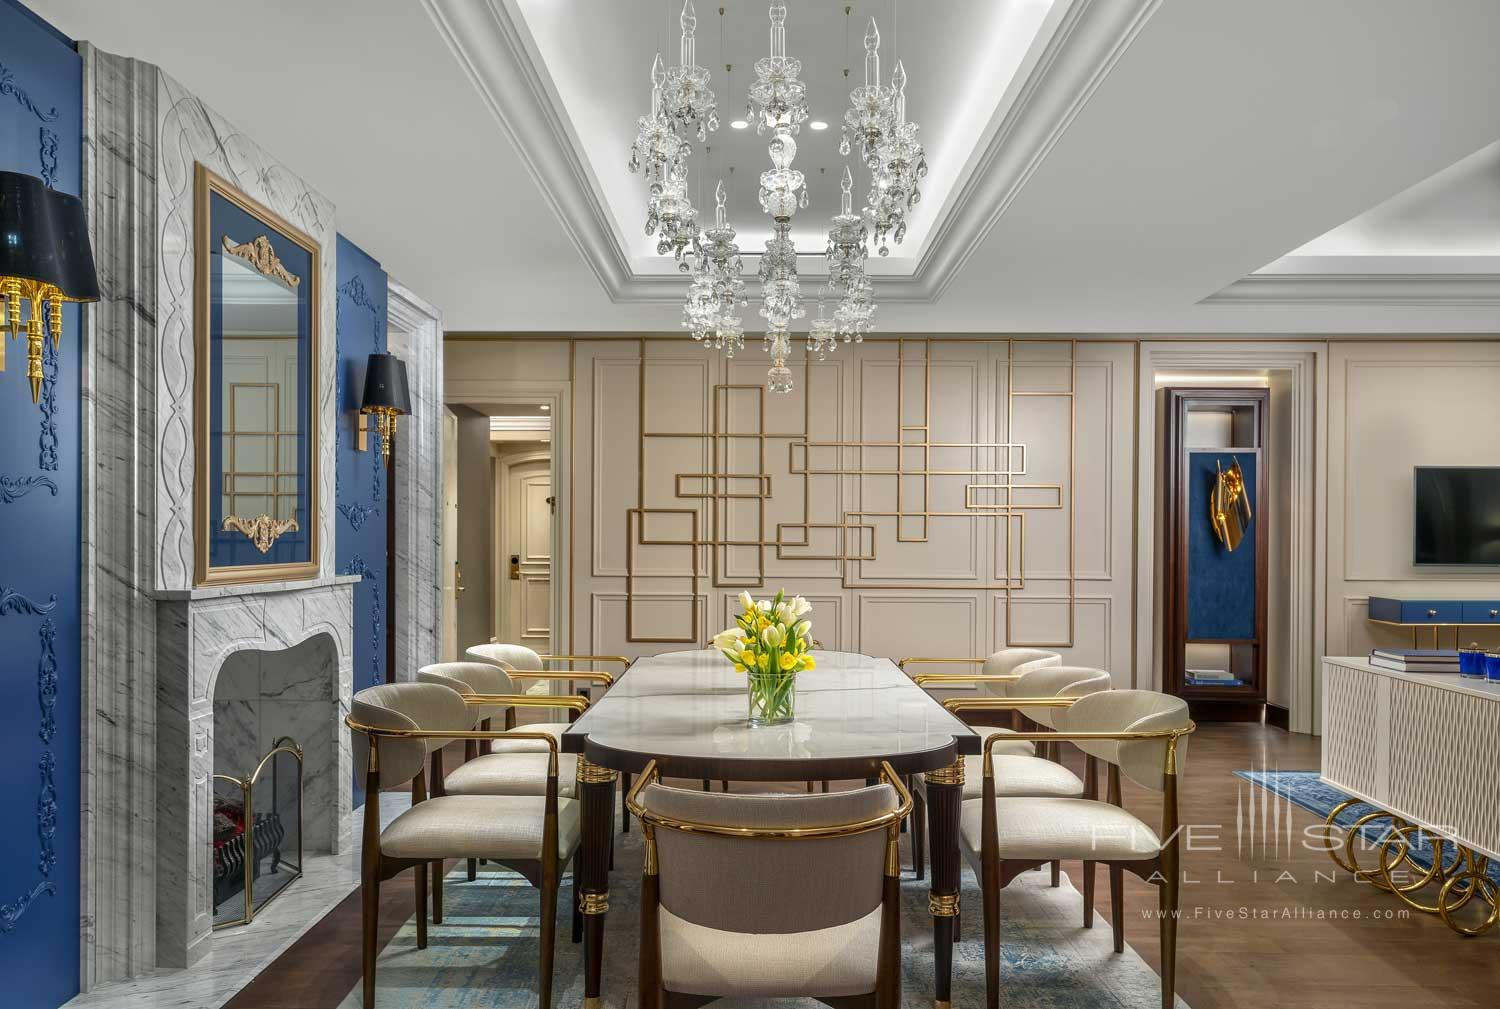 Suite Dining at Ritz Carlton Istanbul, Turkey